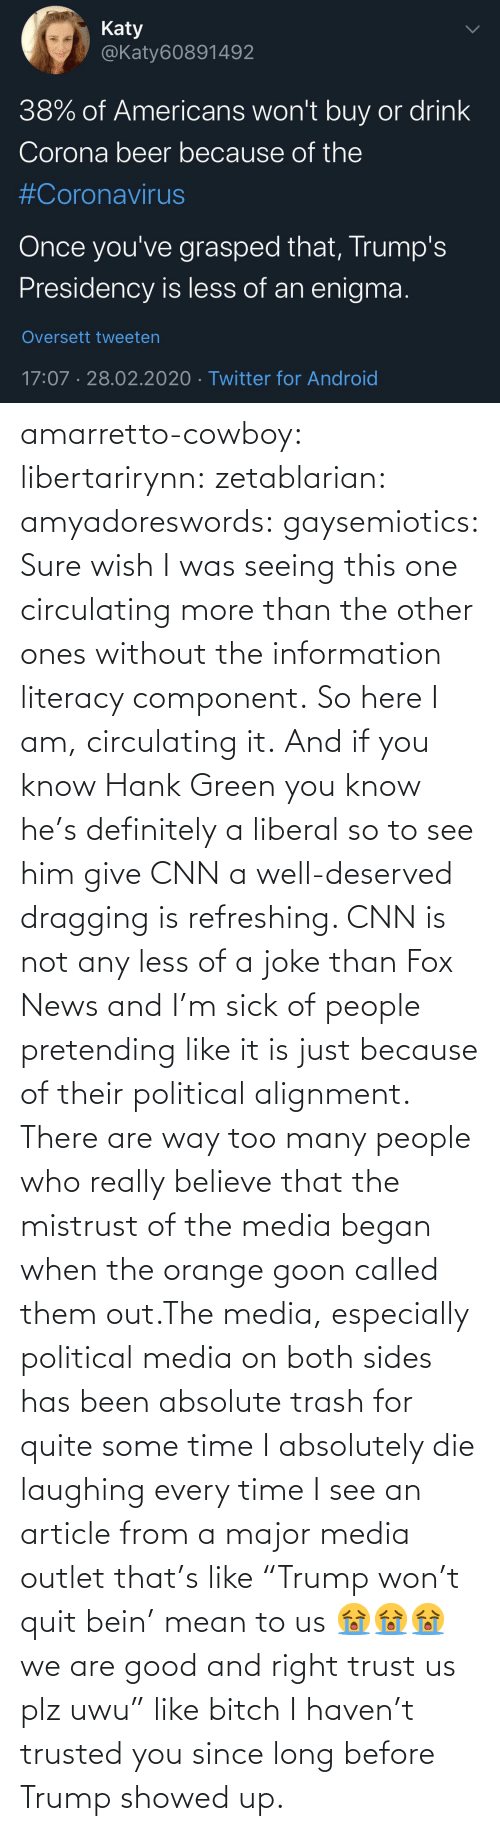 "political: amarretto-cowboy:  libertarirynn:  zetablarian:  amyadoreswords:   gaysemiotics:       Sure wish I was seeing this one circulating more than the other ones without the information literacy component. So here I am, circulating it.    And if you know Hank Green you know he's definitely a liberal so to see him give CNN a well-deserved dragging is refreshing. CNN is not any less of a joke than Fox News and I'm sick of people pretending like it is just because of their political alignment.   There are way too many people who really believe that the mistrust of the media began when the orange goon called them out.The media, especially political media on both sides has been absolute trash for quite some time   I absolutely die laughing every time I see an article from a major media outlet that's like ""Trump won't quit bein' mean to us 😭😭😭 we are good and right trust us plz uwu"" like bitch I haven't trusted you since long before Trump showed up."